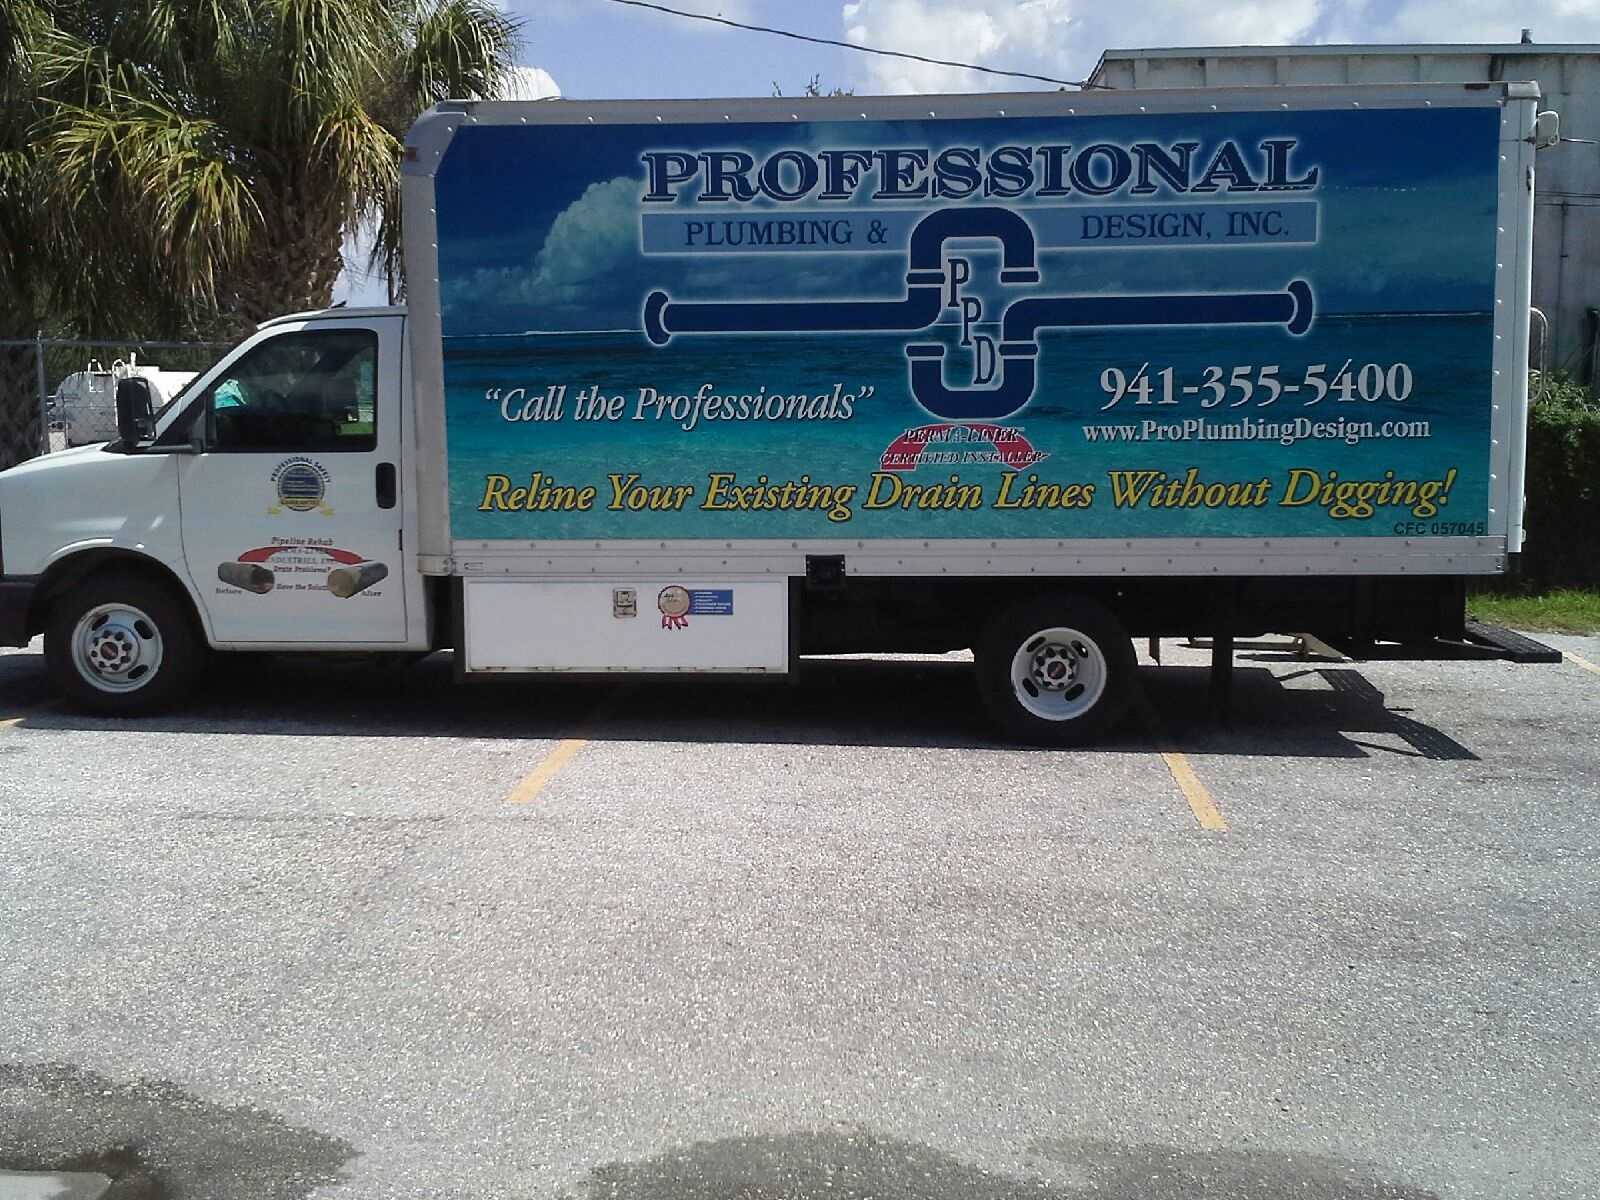 Professional Plumbing & Design, INC of Sarasota